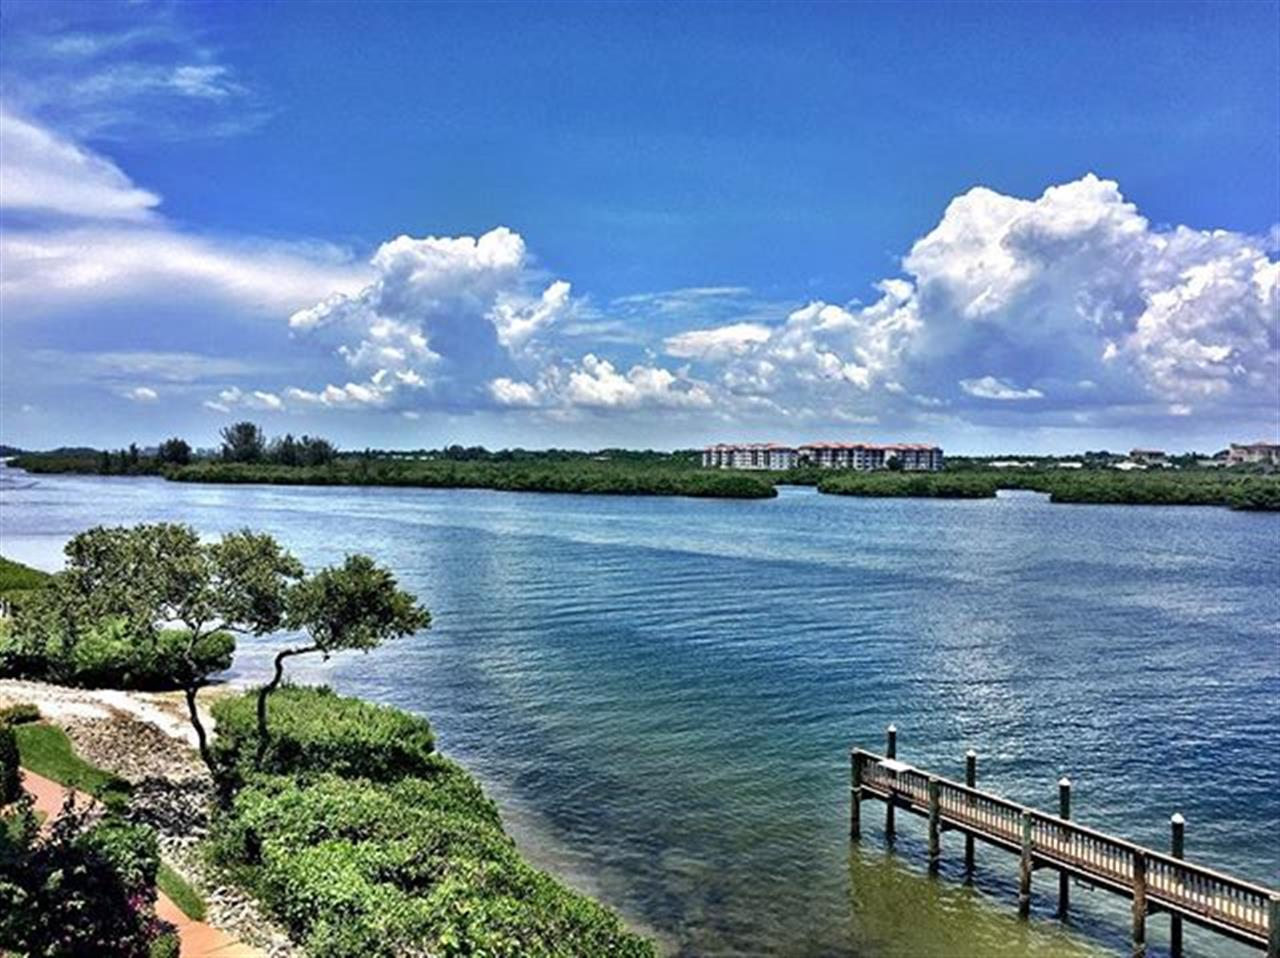 Another stunning day on #SiestaKey! #sarasota